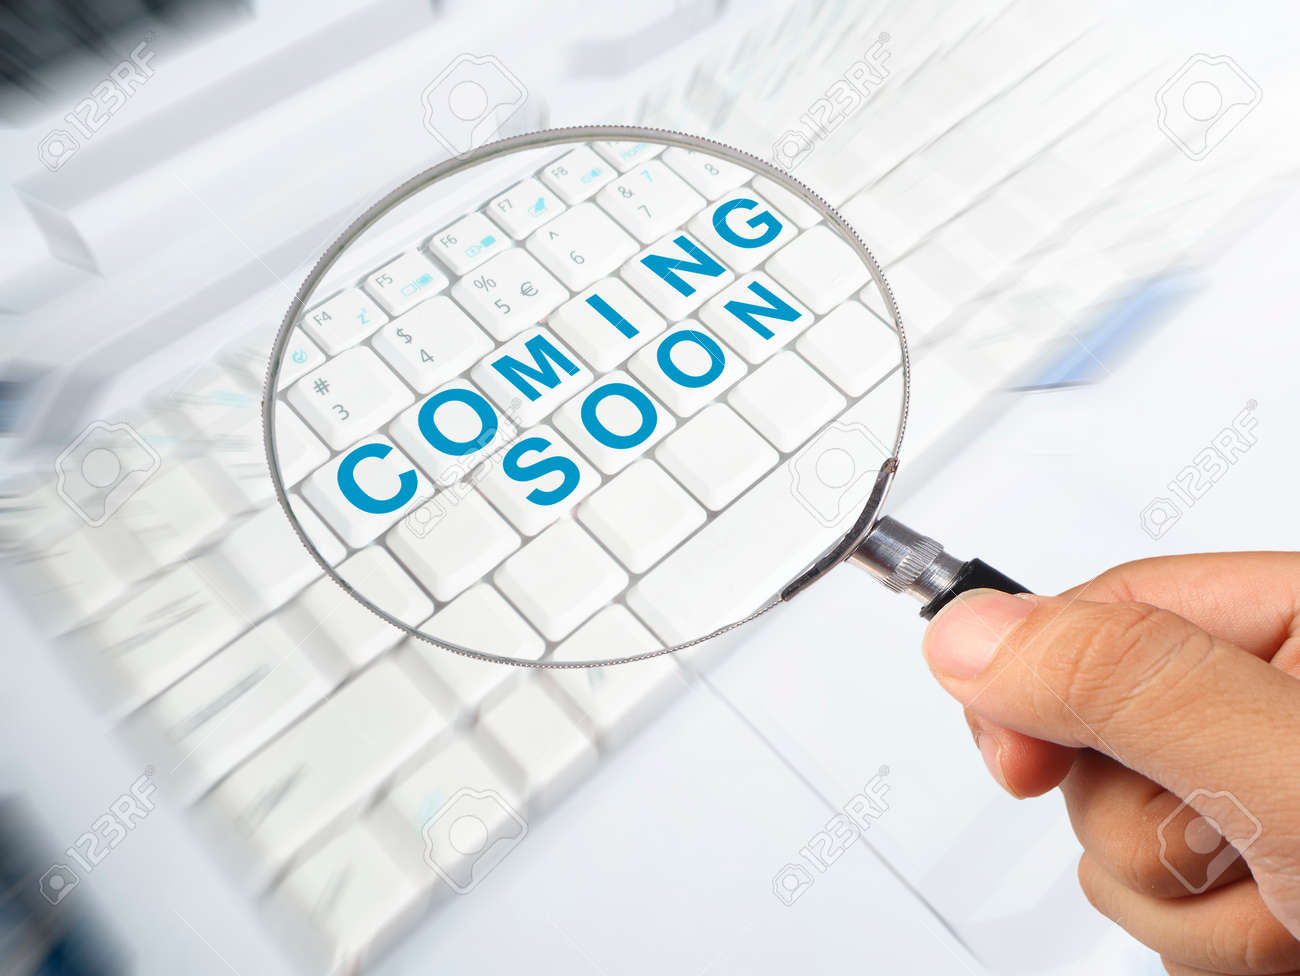 Coming Soon Motivational Inspirational Business Marketing Words Stock Photo Picture And Royalty Free Image Image 121948521